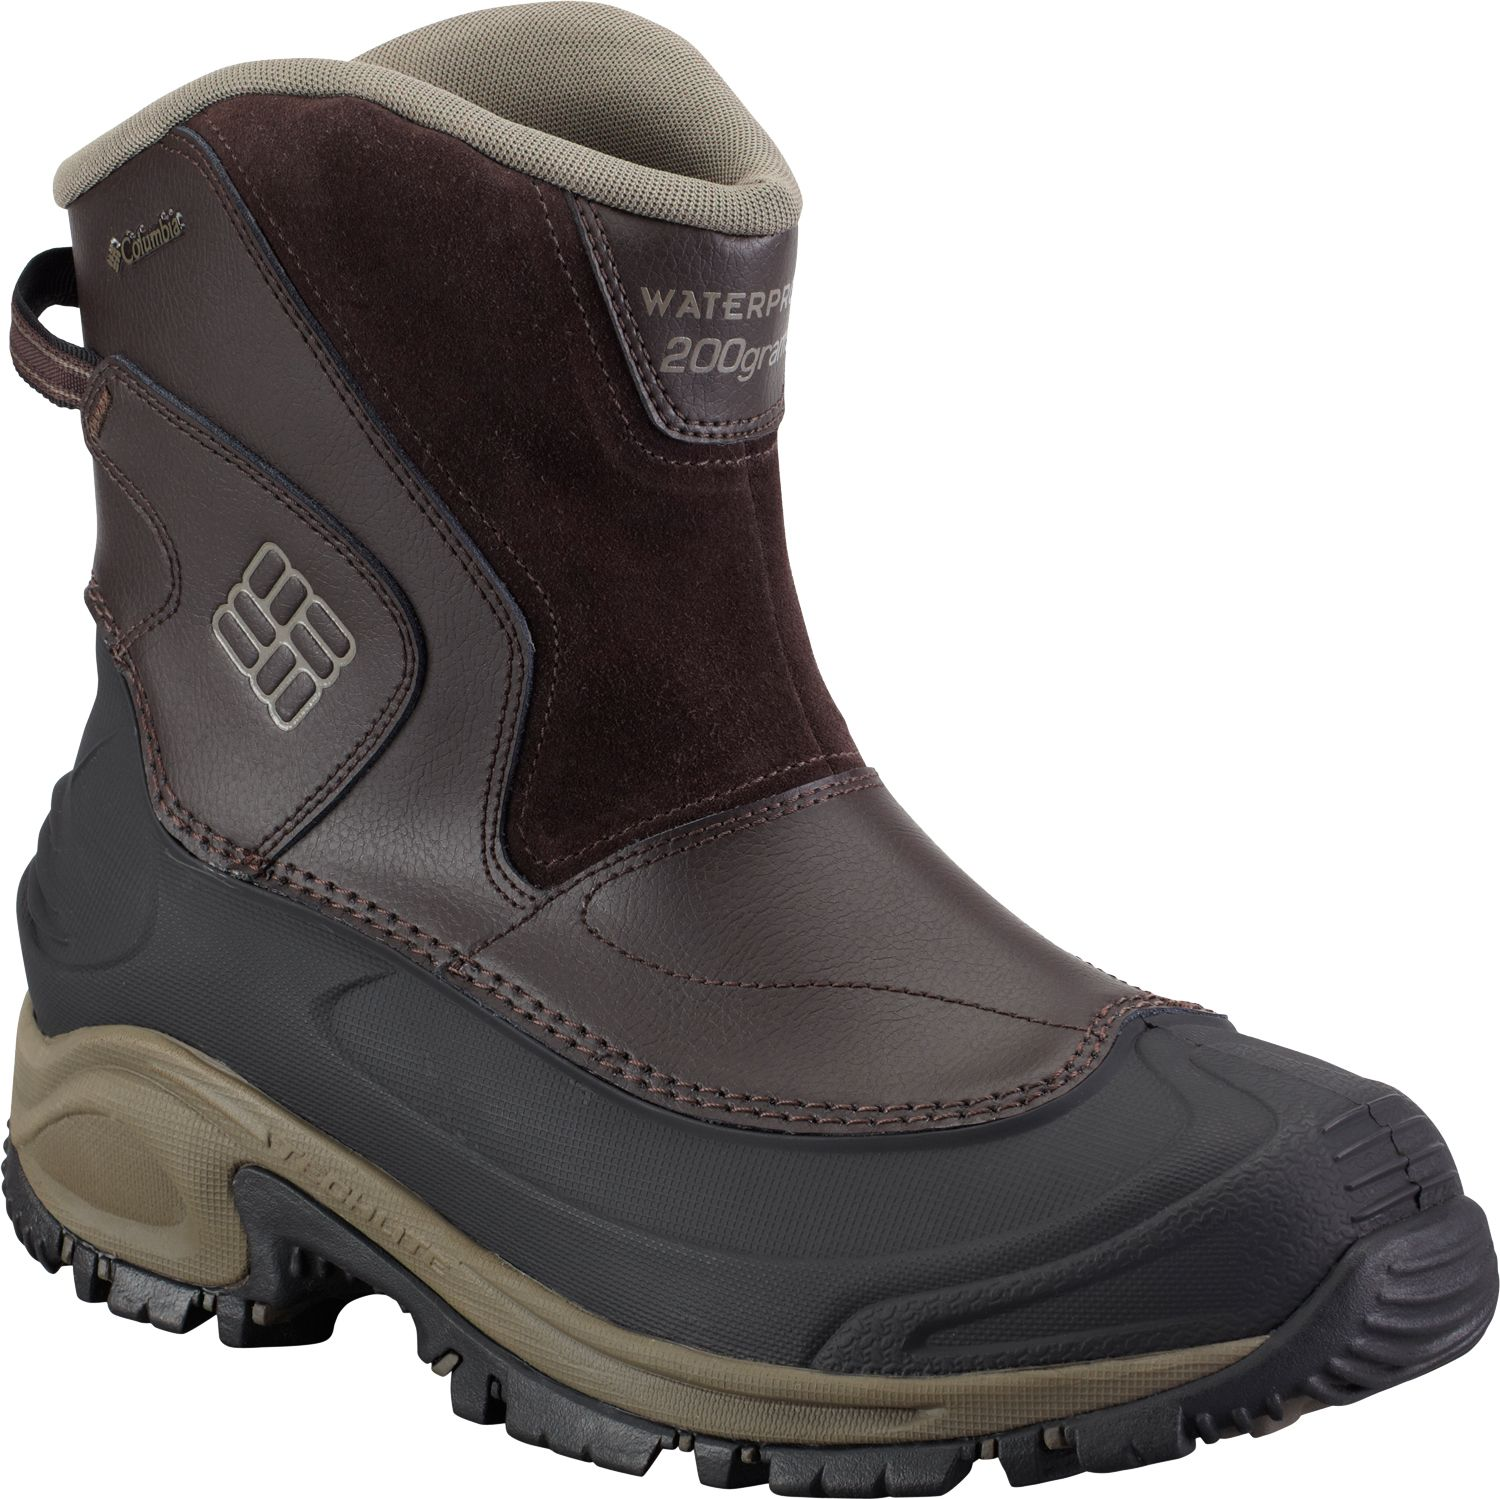 Columbia Men's Bugaboot Slip-On Waterproof 200g Winter Boots ...